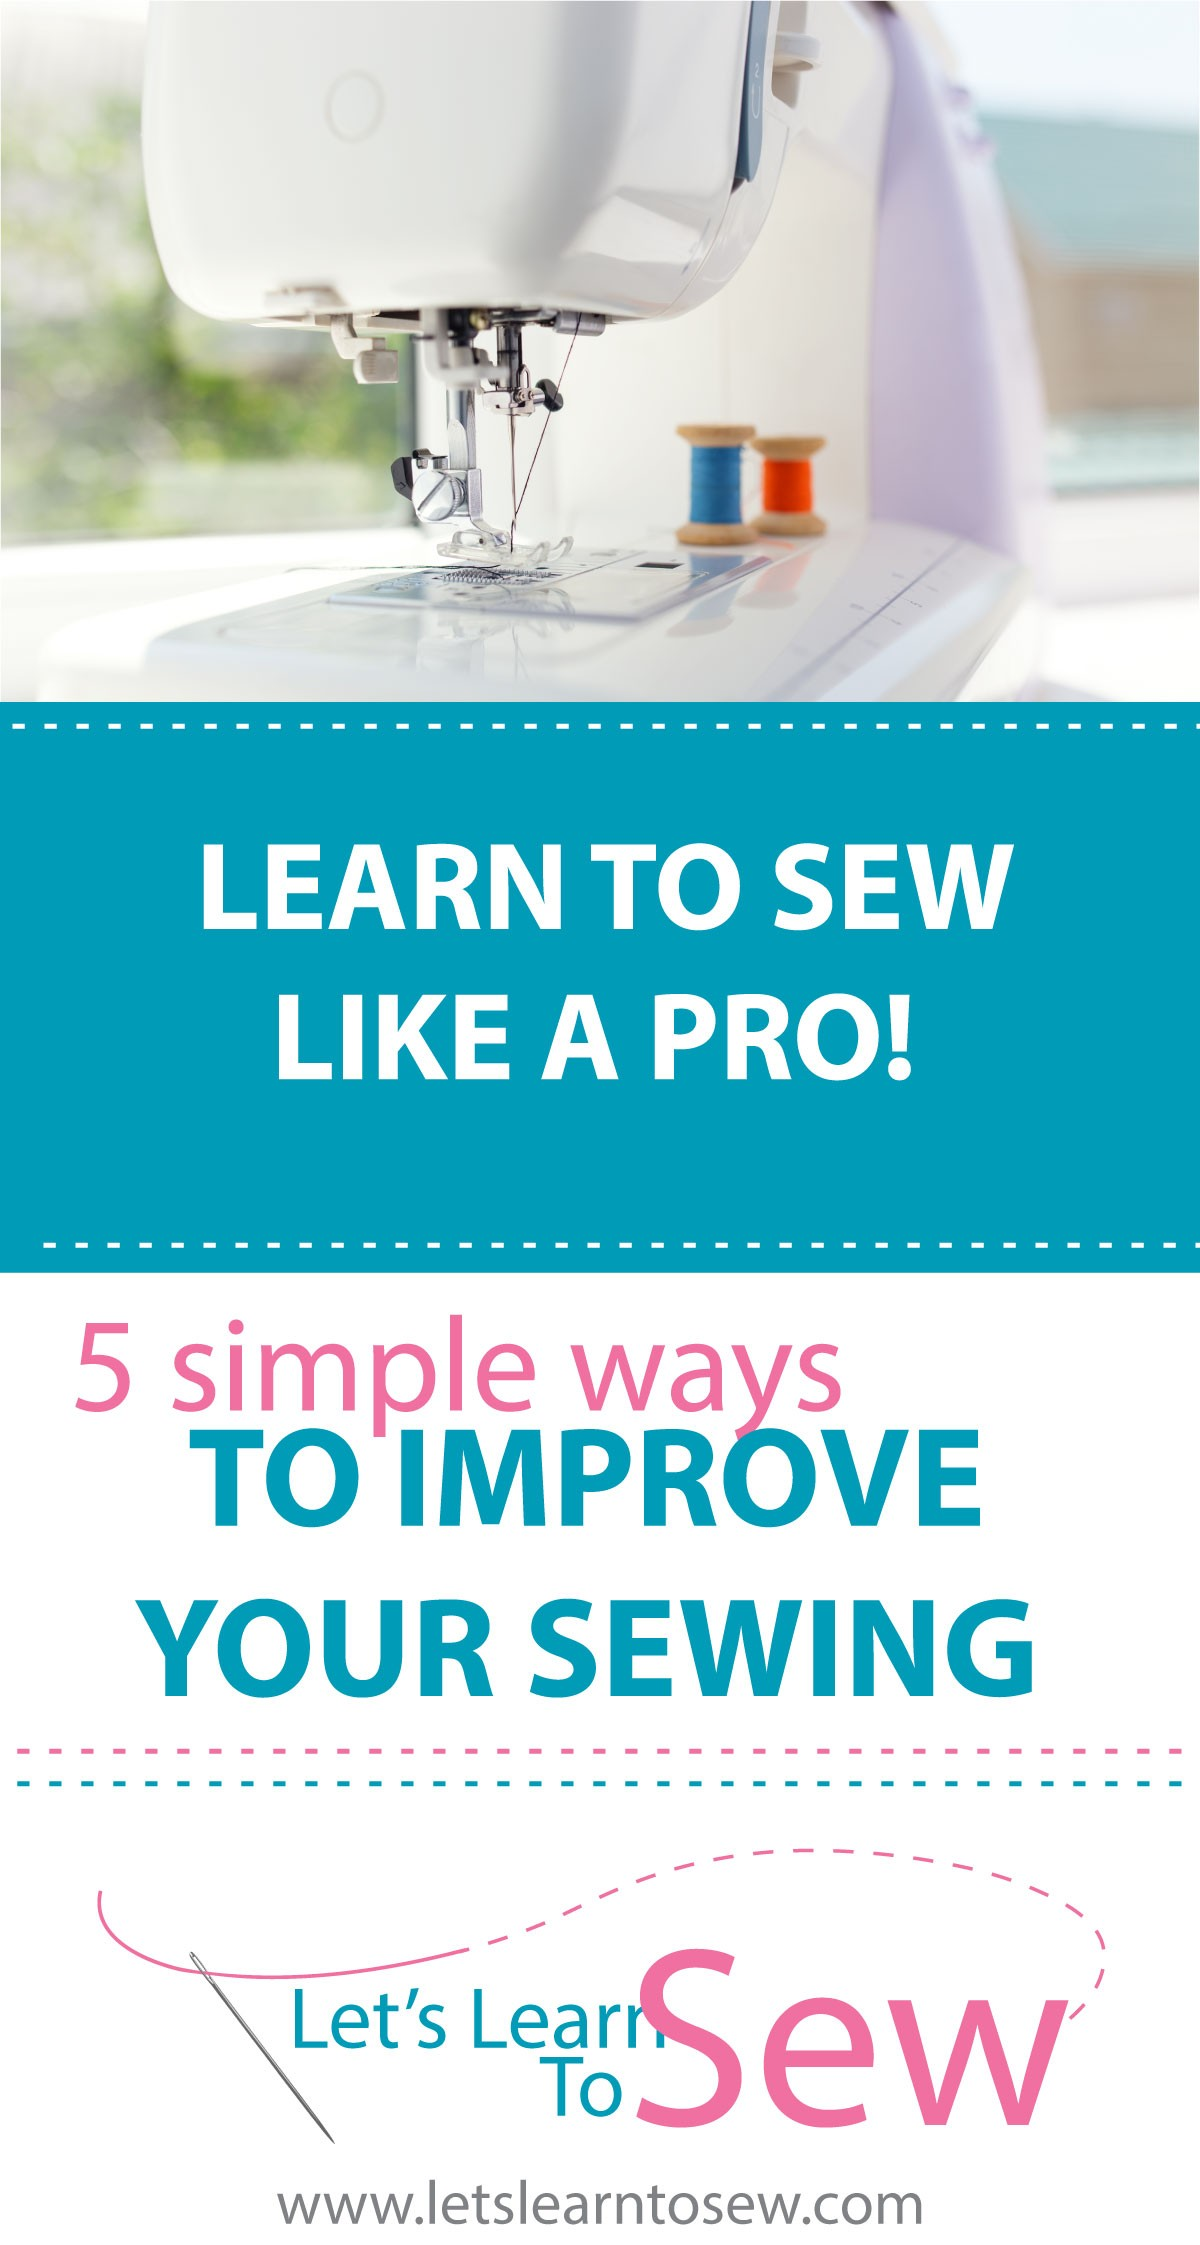 Sew Like A Pro 5 Tips To Improve Your Sewing